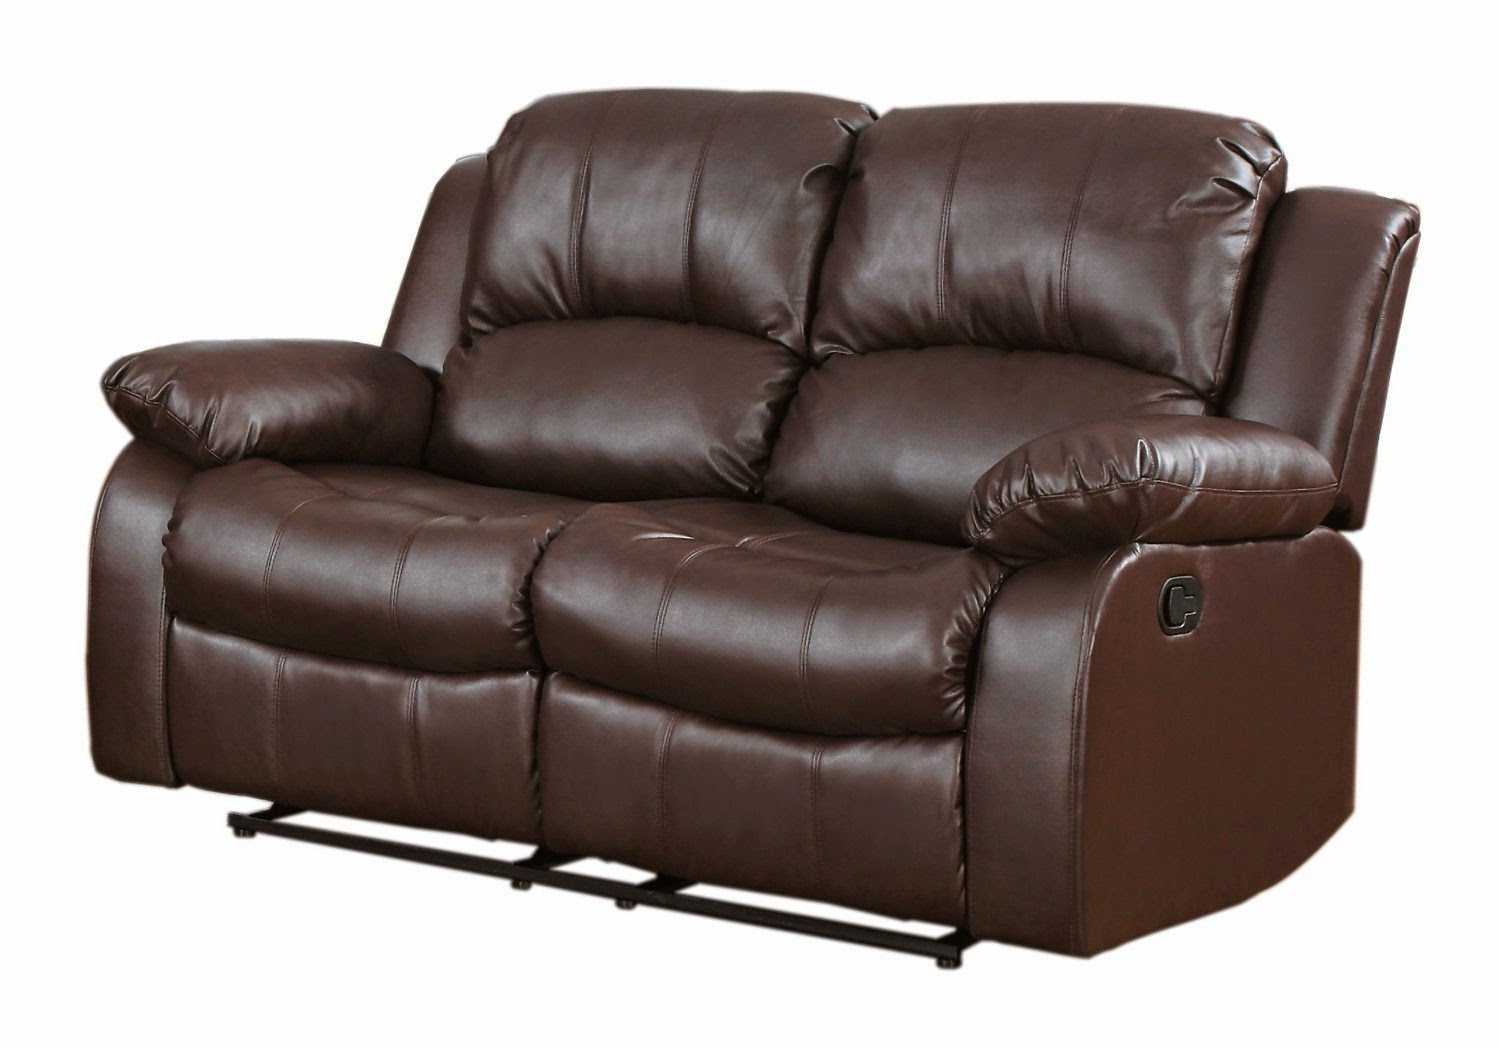 Reclining Sofa Brands Burgundy Sectional Sofas Best Leather Reviews 2 Seat